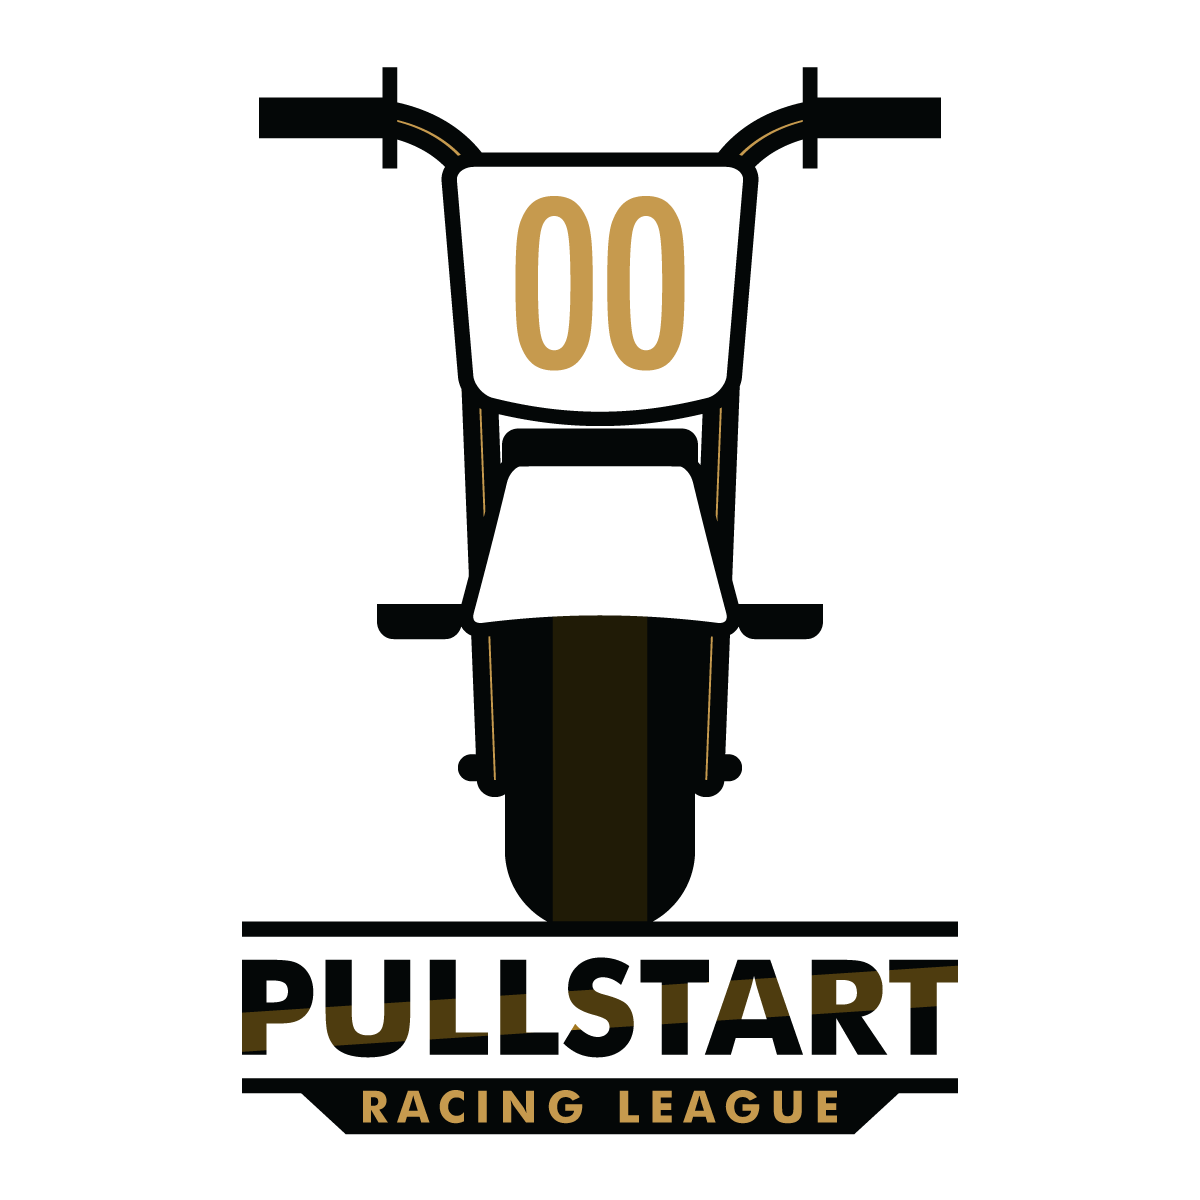 Pullstart Racing League